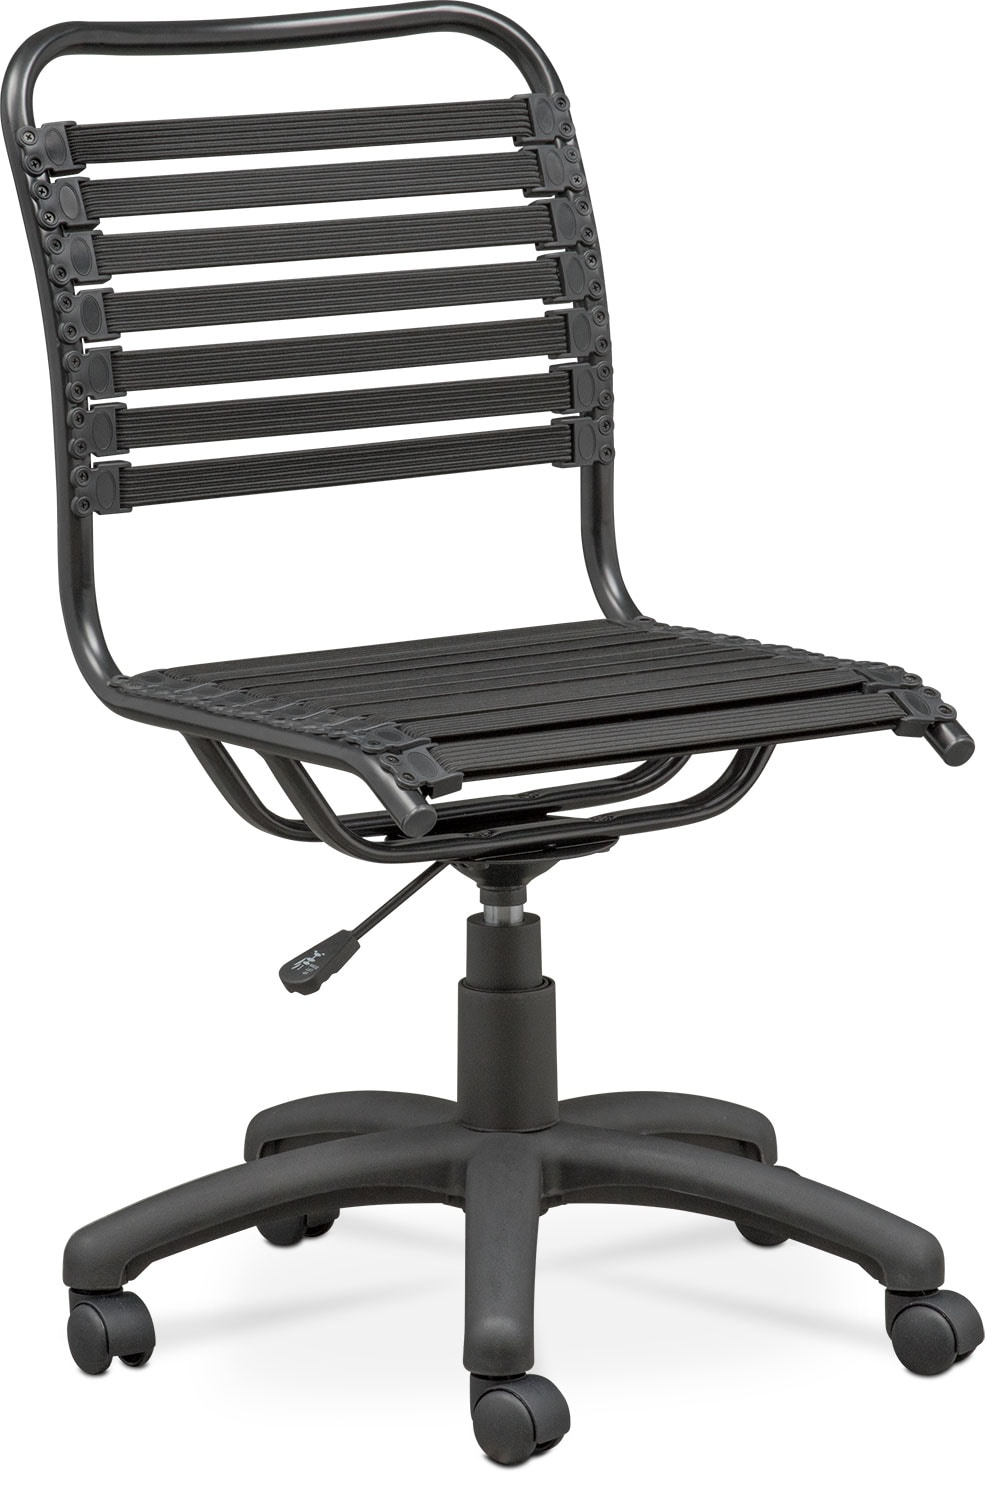 Ordinaire Home Office Furniture   Tribeca Desk Chair   Black